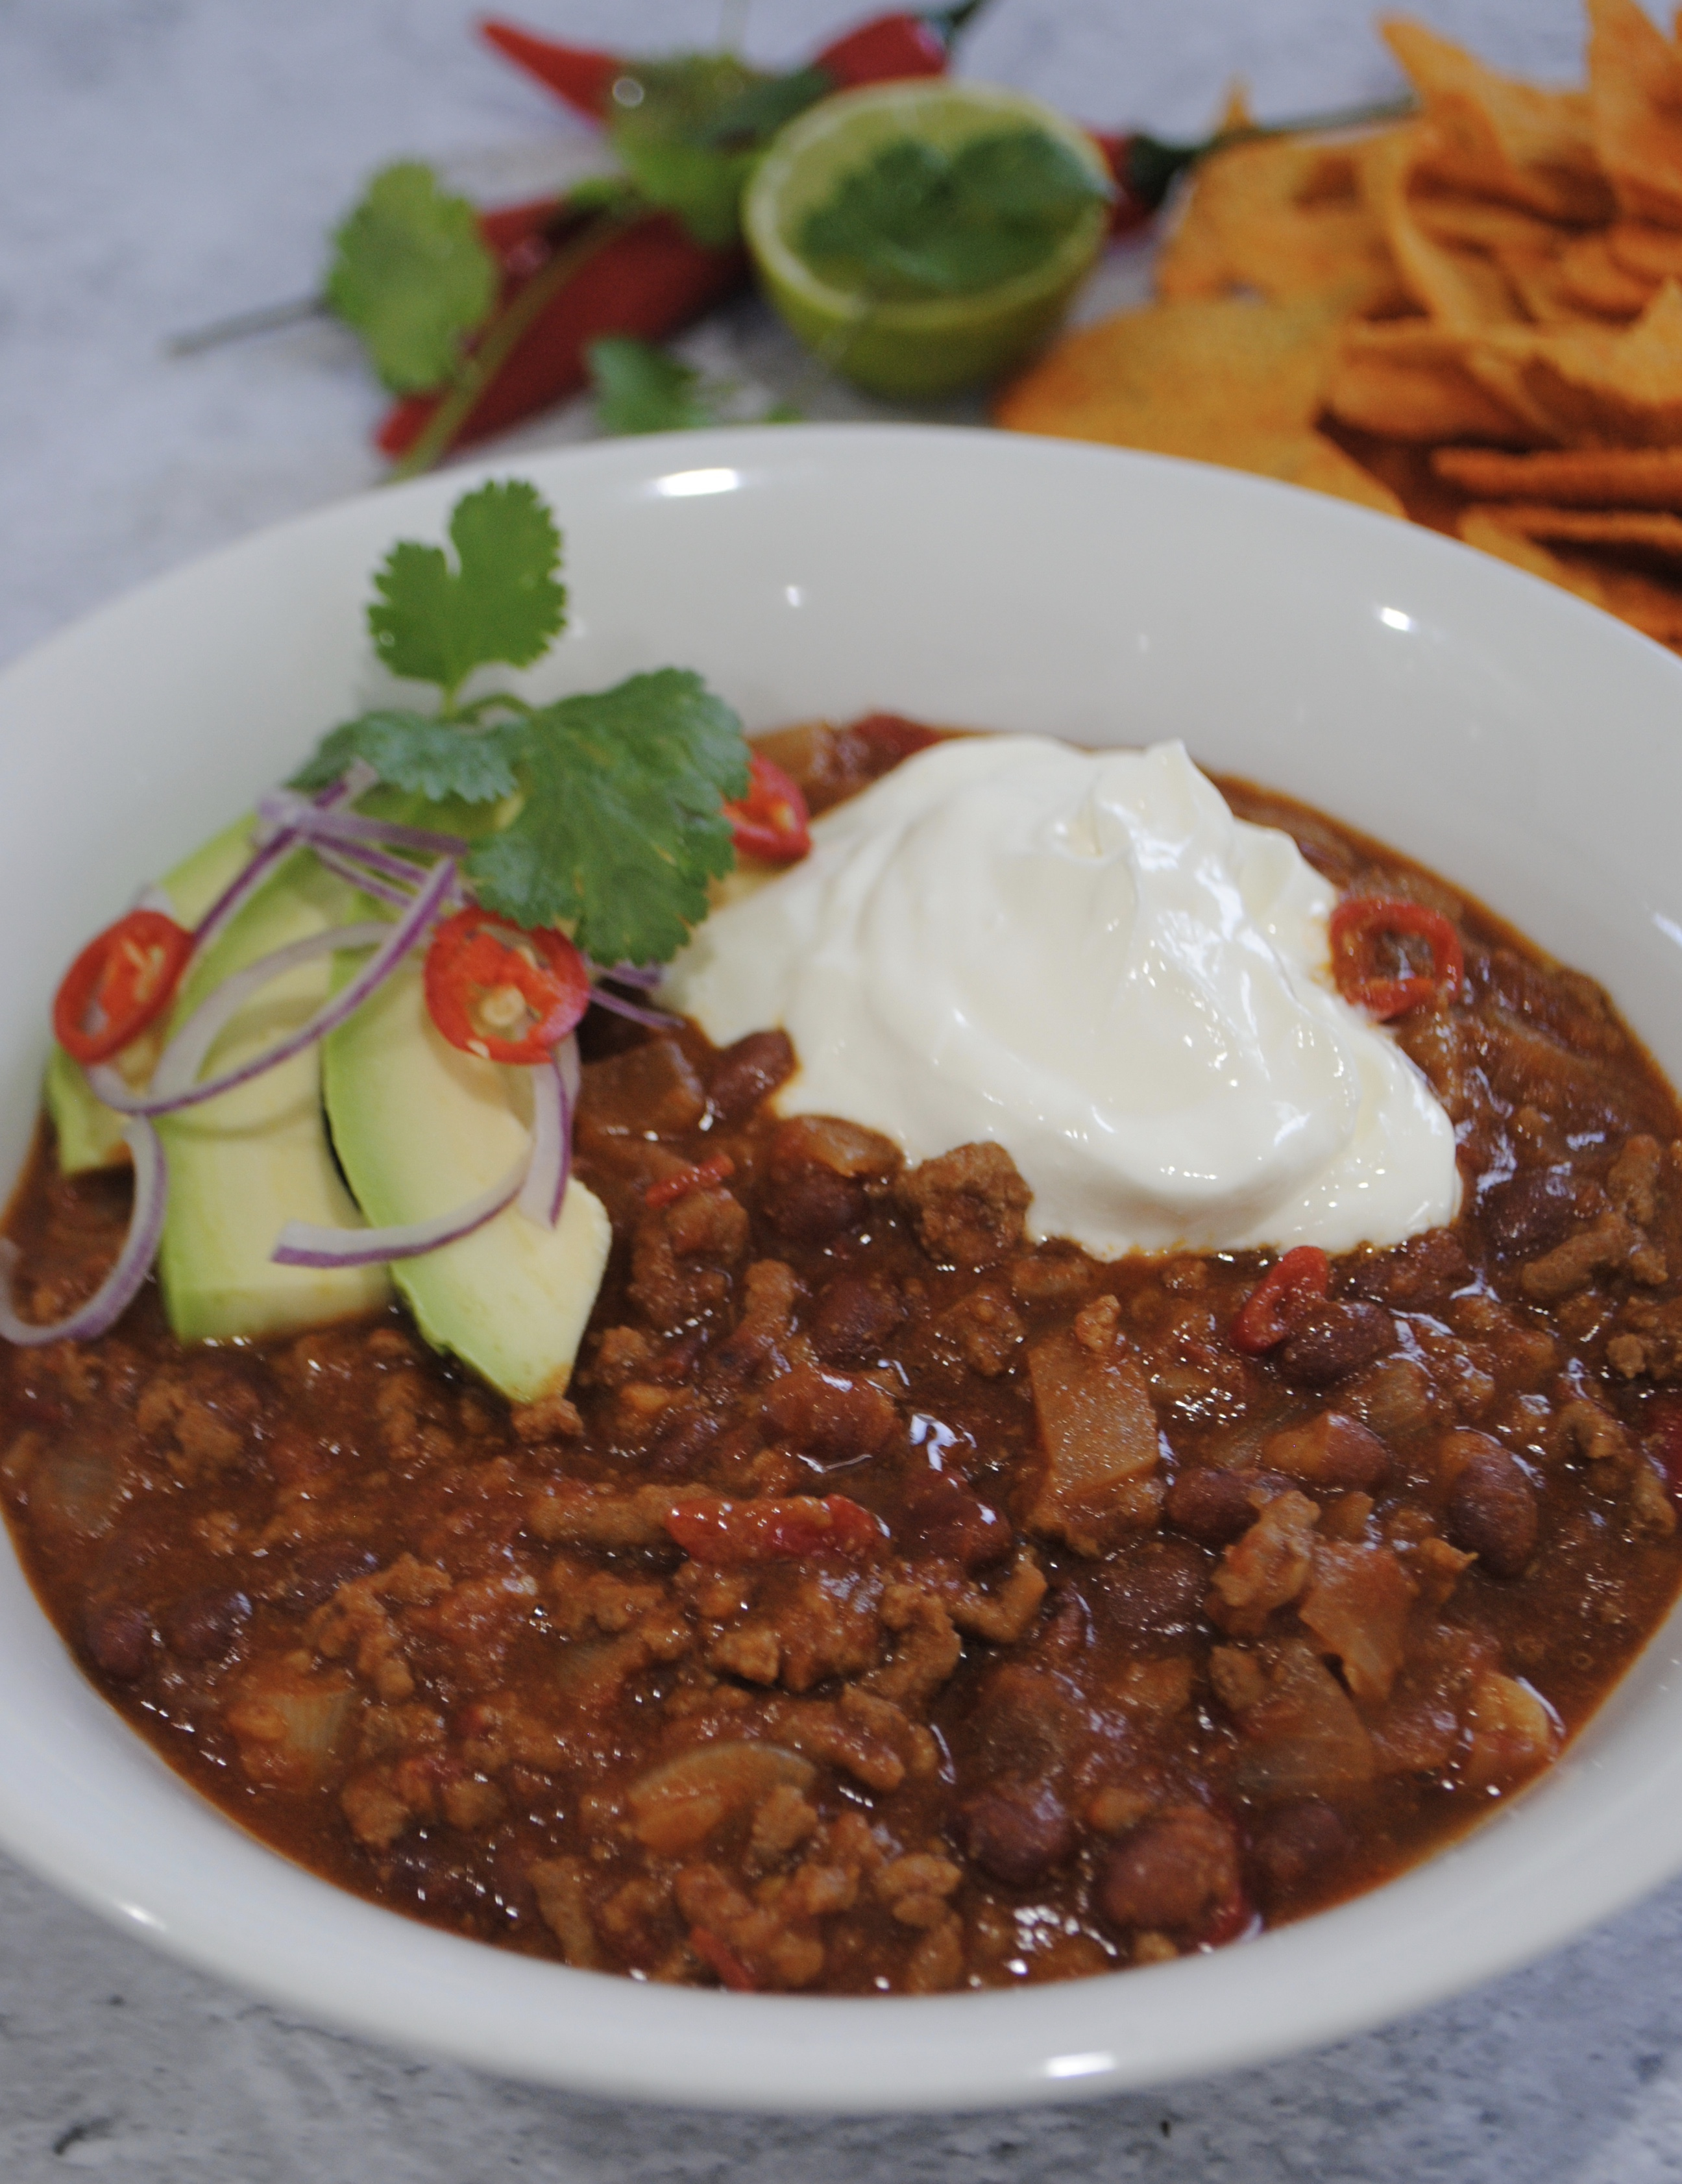 Smokey Chilli Con Carne served in a bowl with sour cream and guacamole